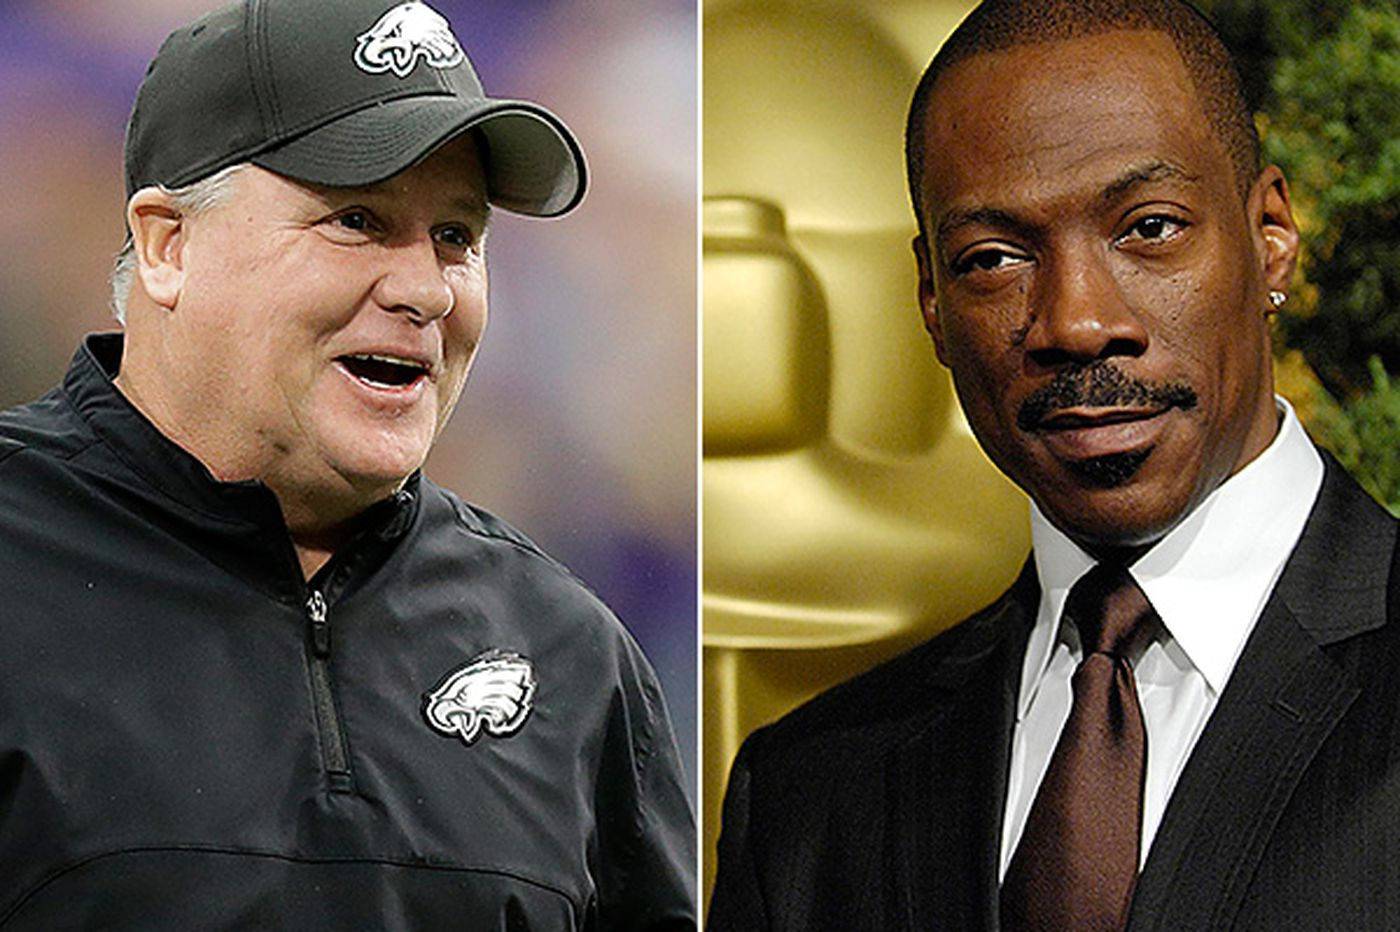 Full Transcript: Eagles coach Chip Kelly talks Cowboys, references 'Beverly Hills Cop'